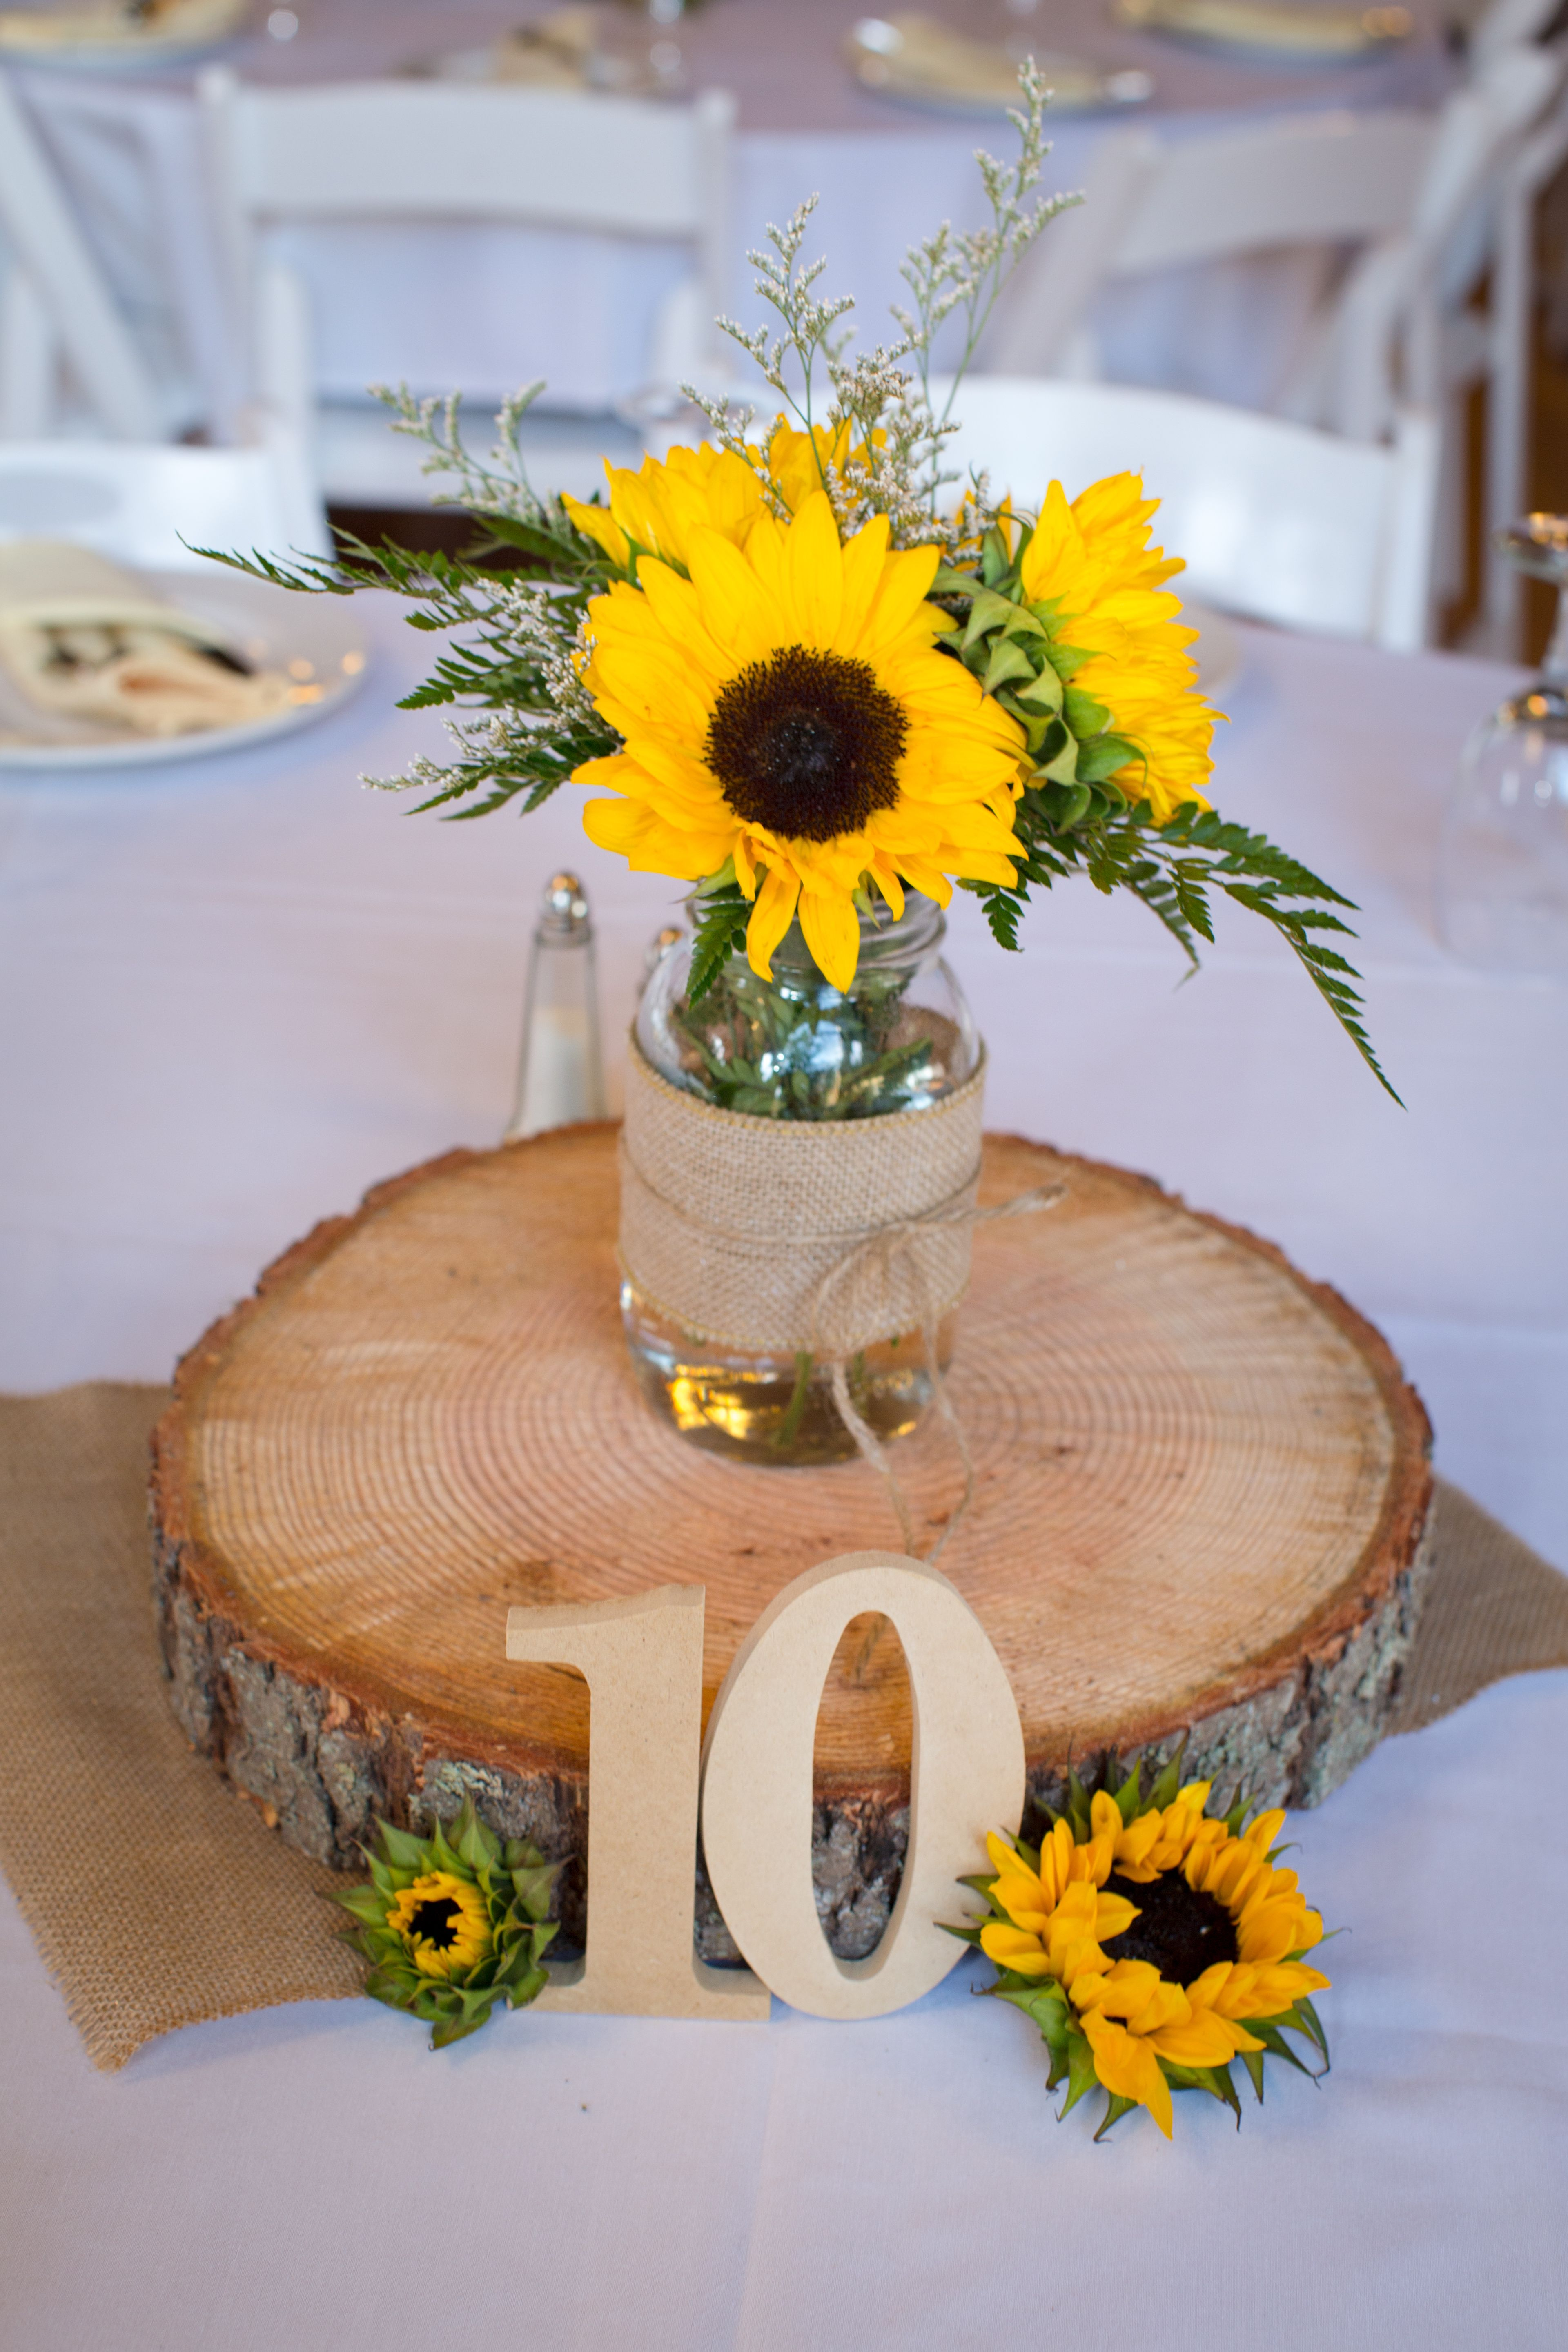 Wooden slab centerpiece and table number wedding decor